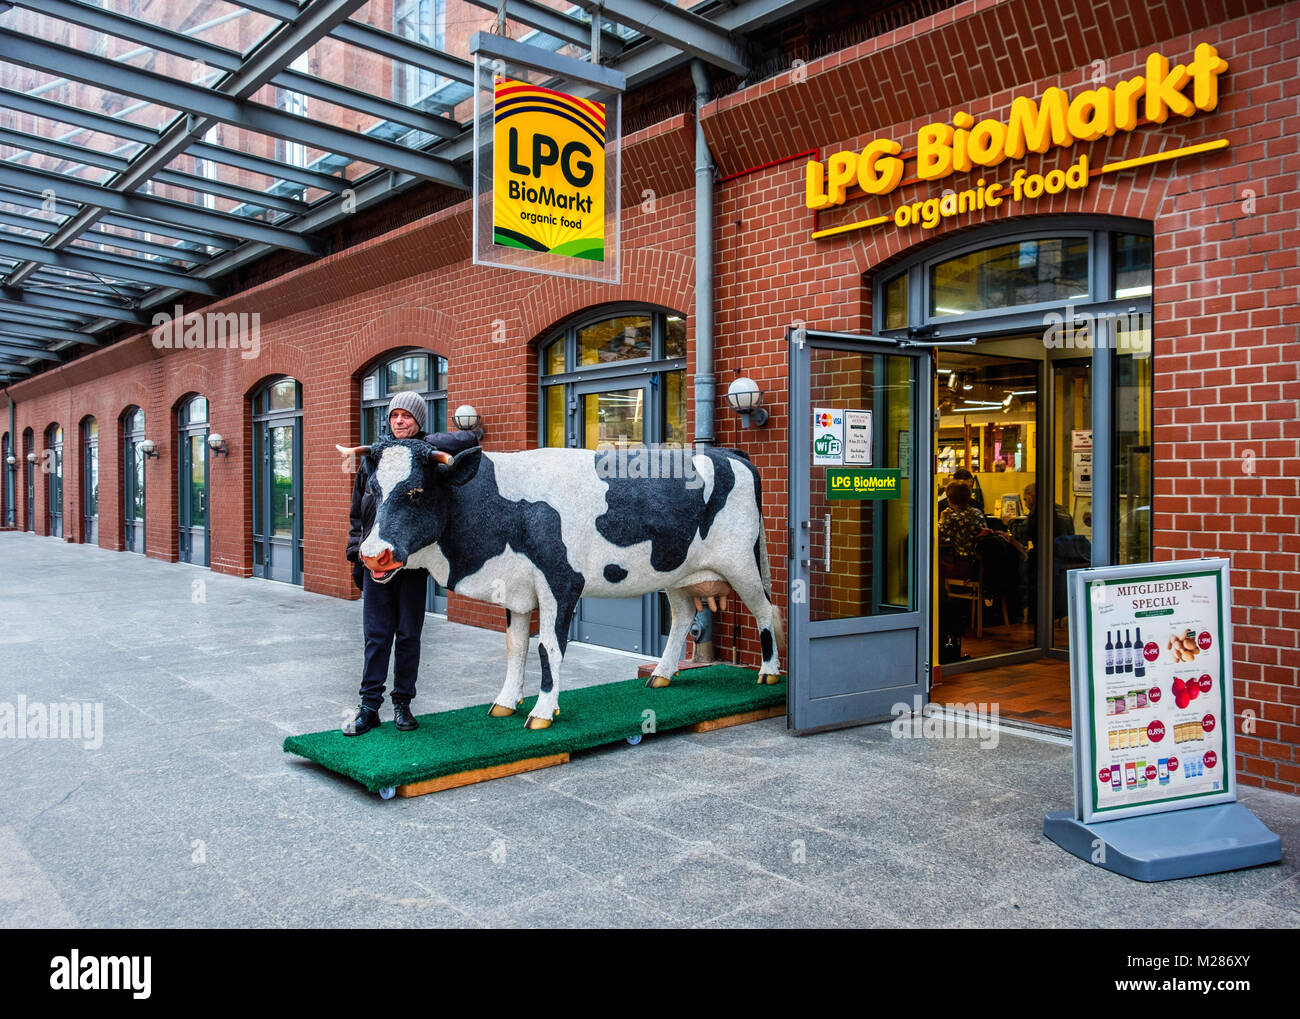 Berlin,Mitte,Moabit.LPG BioMarket organic food store entrance and elderly man standing with model of life size cow - Stock Image